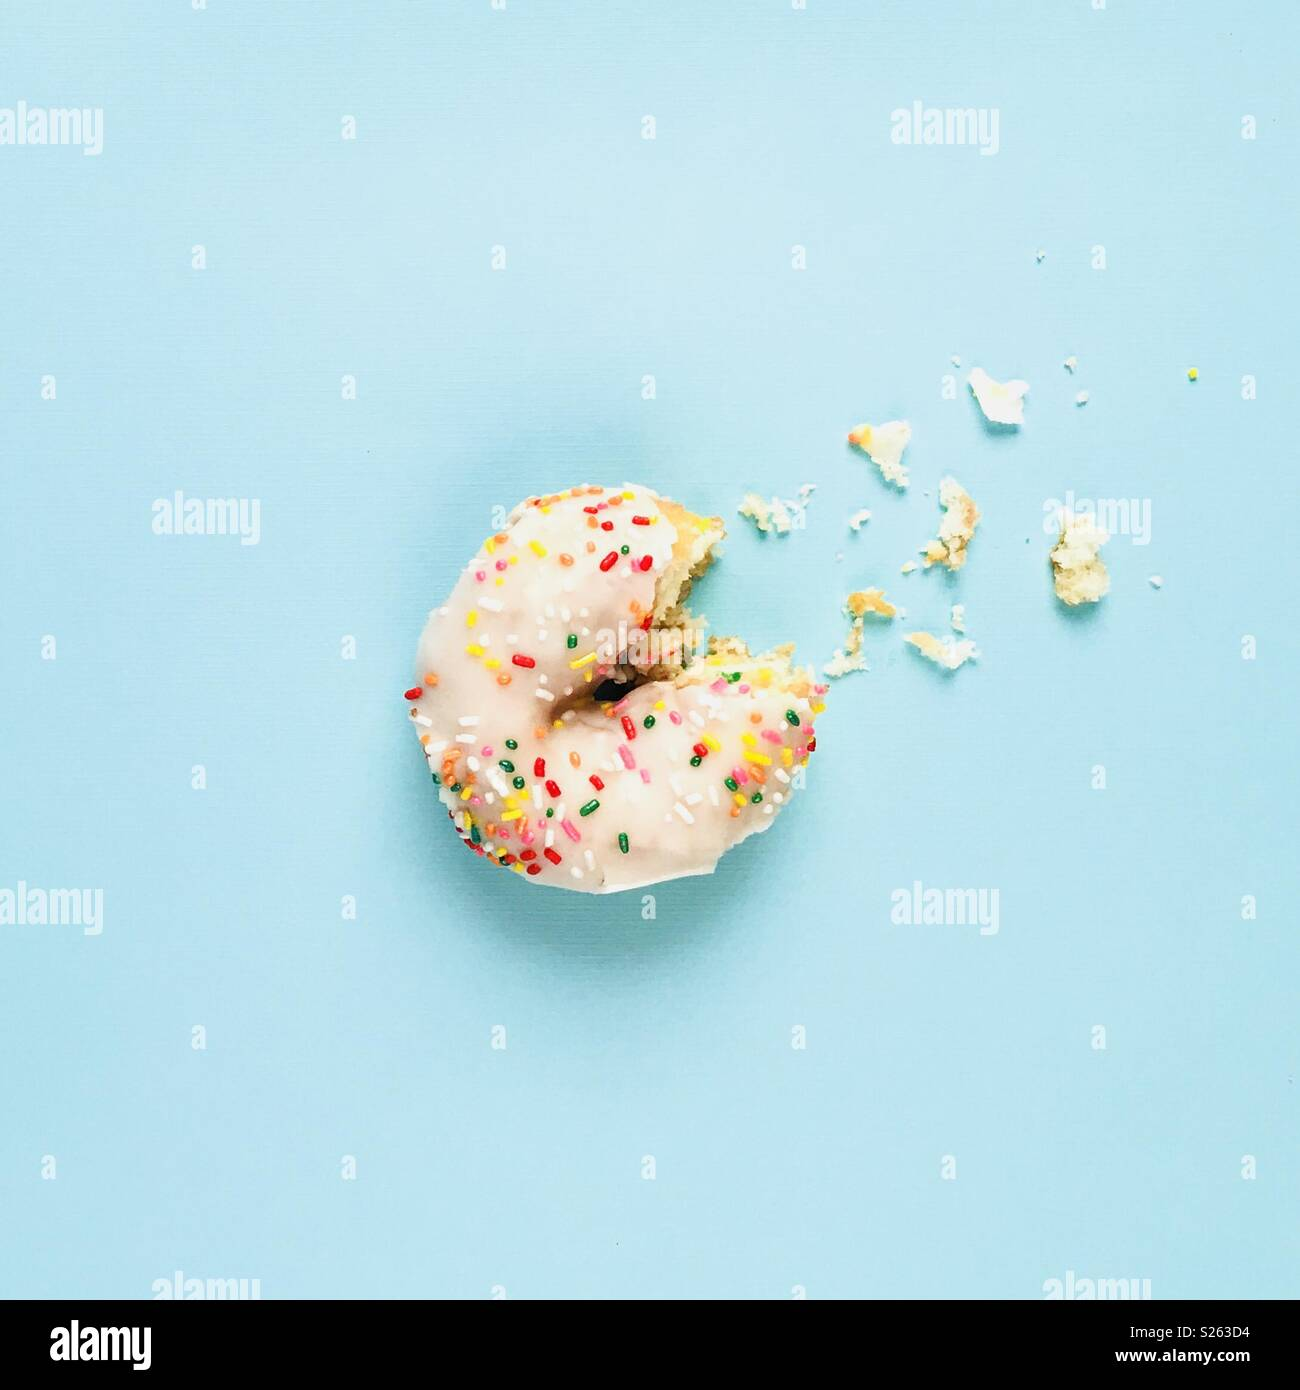 A white sprinkle donut with a bite out of it on a blue background. - Stock Image